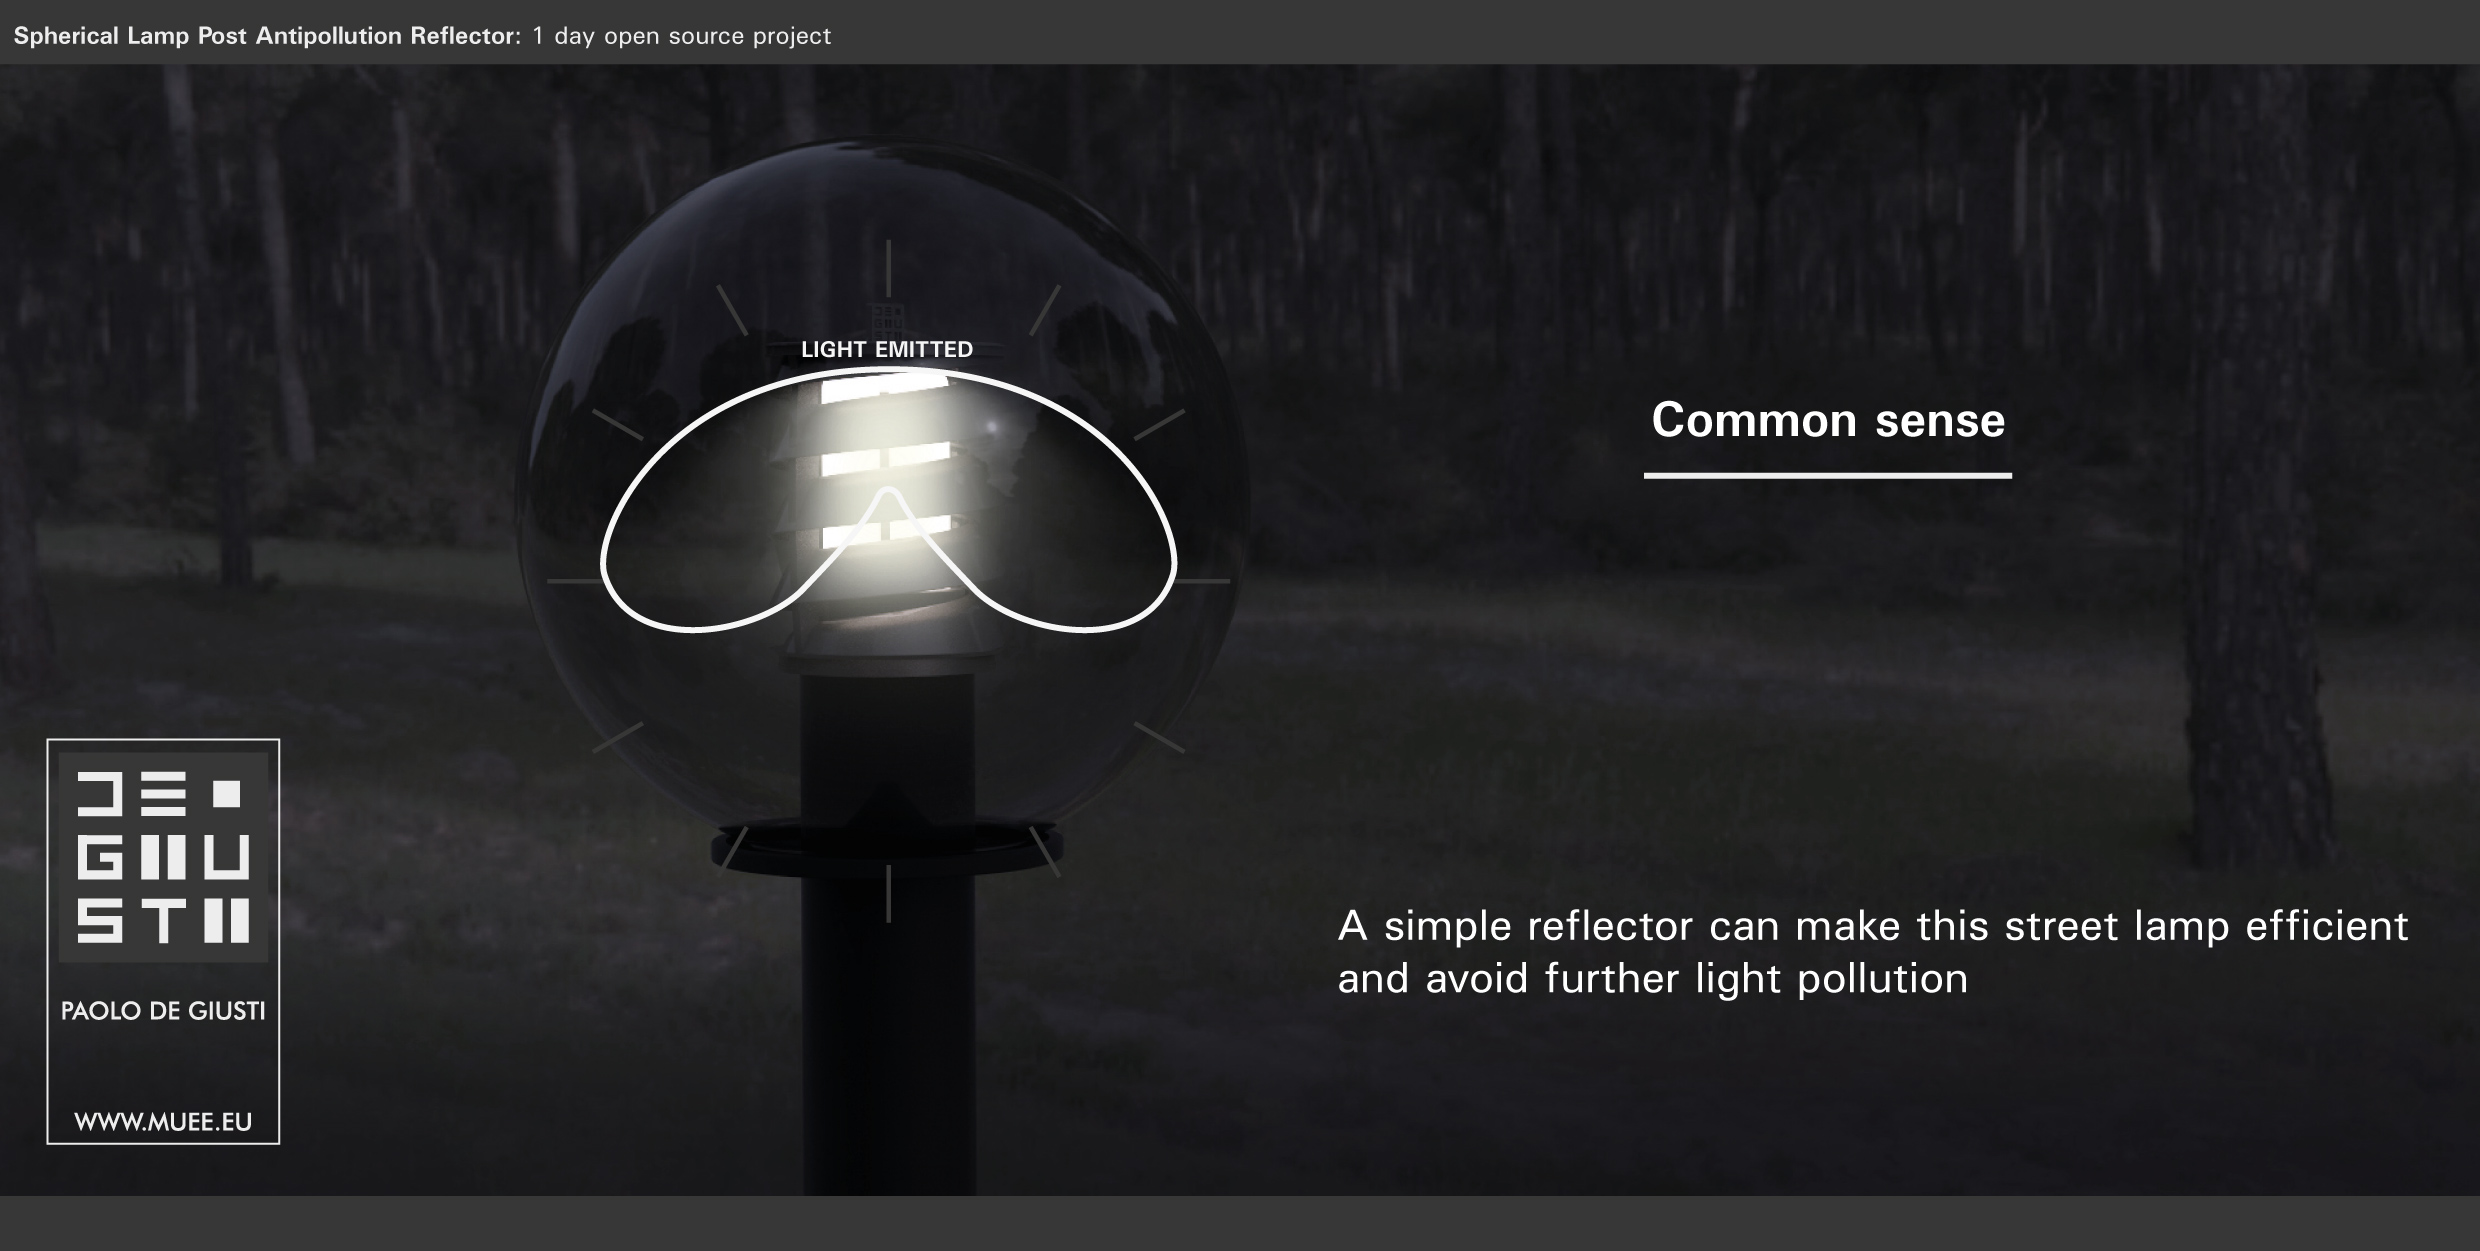 Spherical Lamp Post Antipollution Reflector by Paolo De Giusti-04